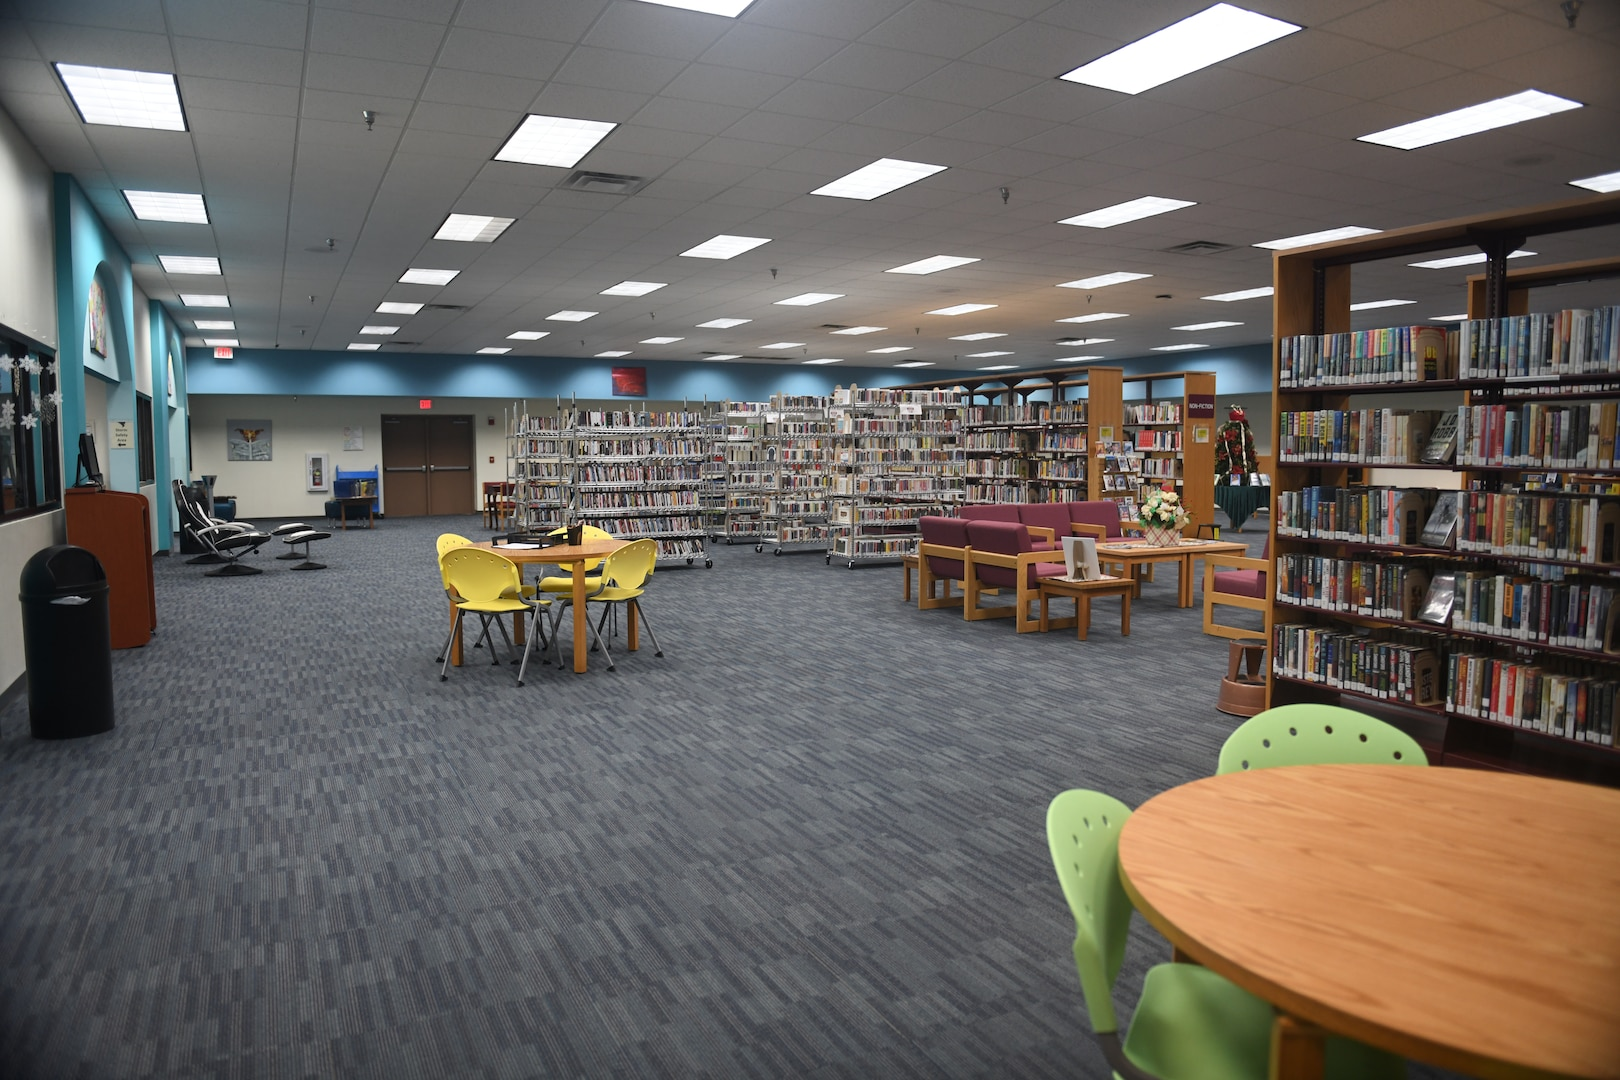 A view of the main area from the children's area of the library at Joint Base San Antonio-Randolph, Texas, Dec. 5, 2019. The modern bookstore layout adds to the Randolph facility's more accommodating feel.